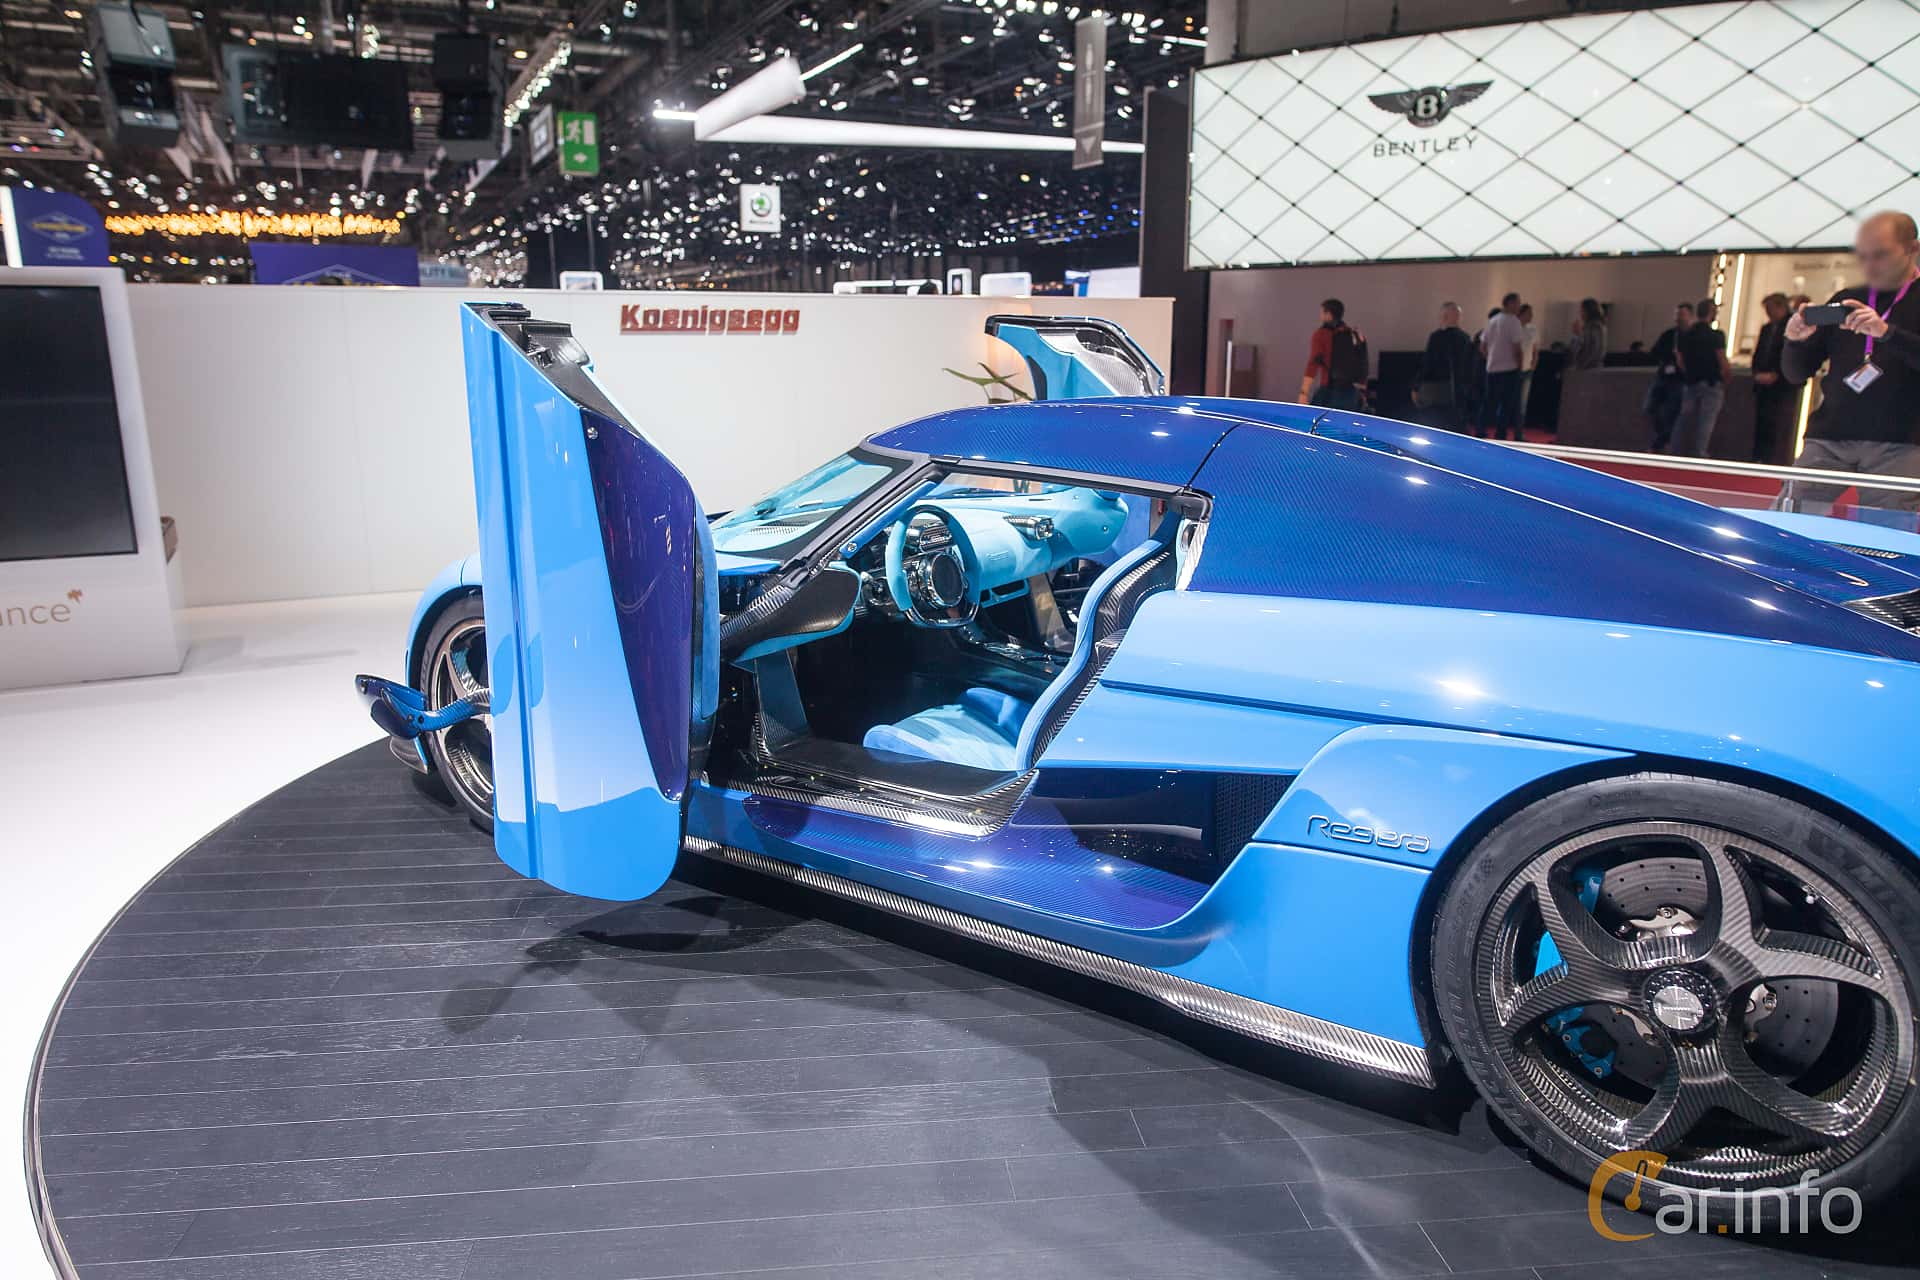 Close-up of Koenigsegg Regera 5.0 V8 KDD, 1500ps, 2018 at Geneva Motor Show 2018